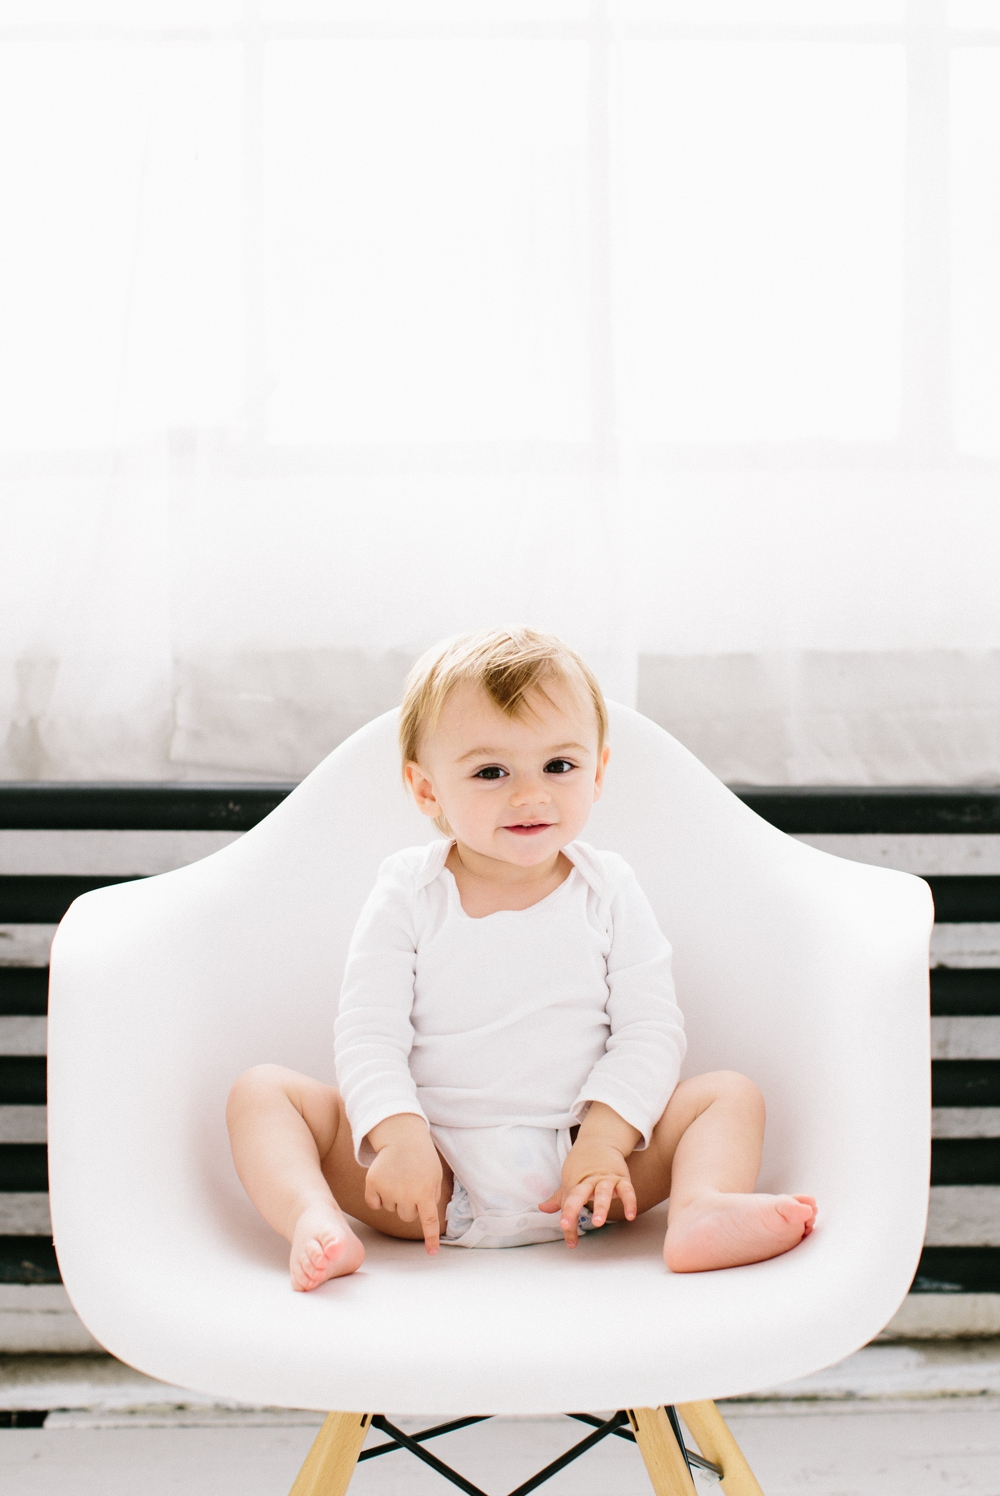 Seattle_studio_family_baby_one-year-old_Photographer 1.jpg